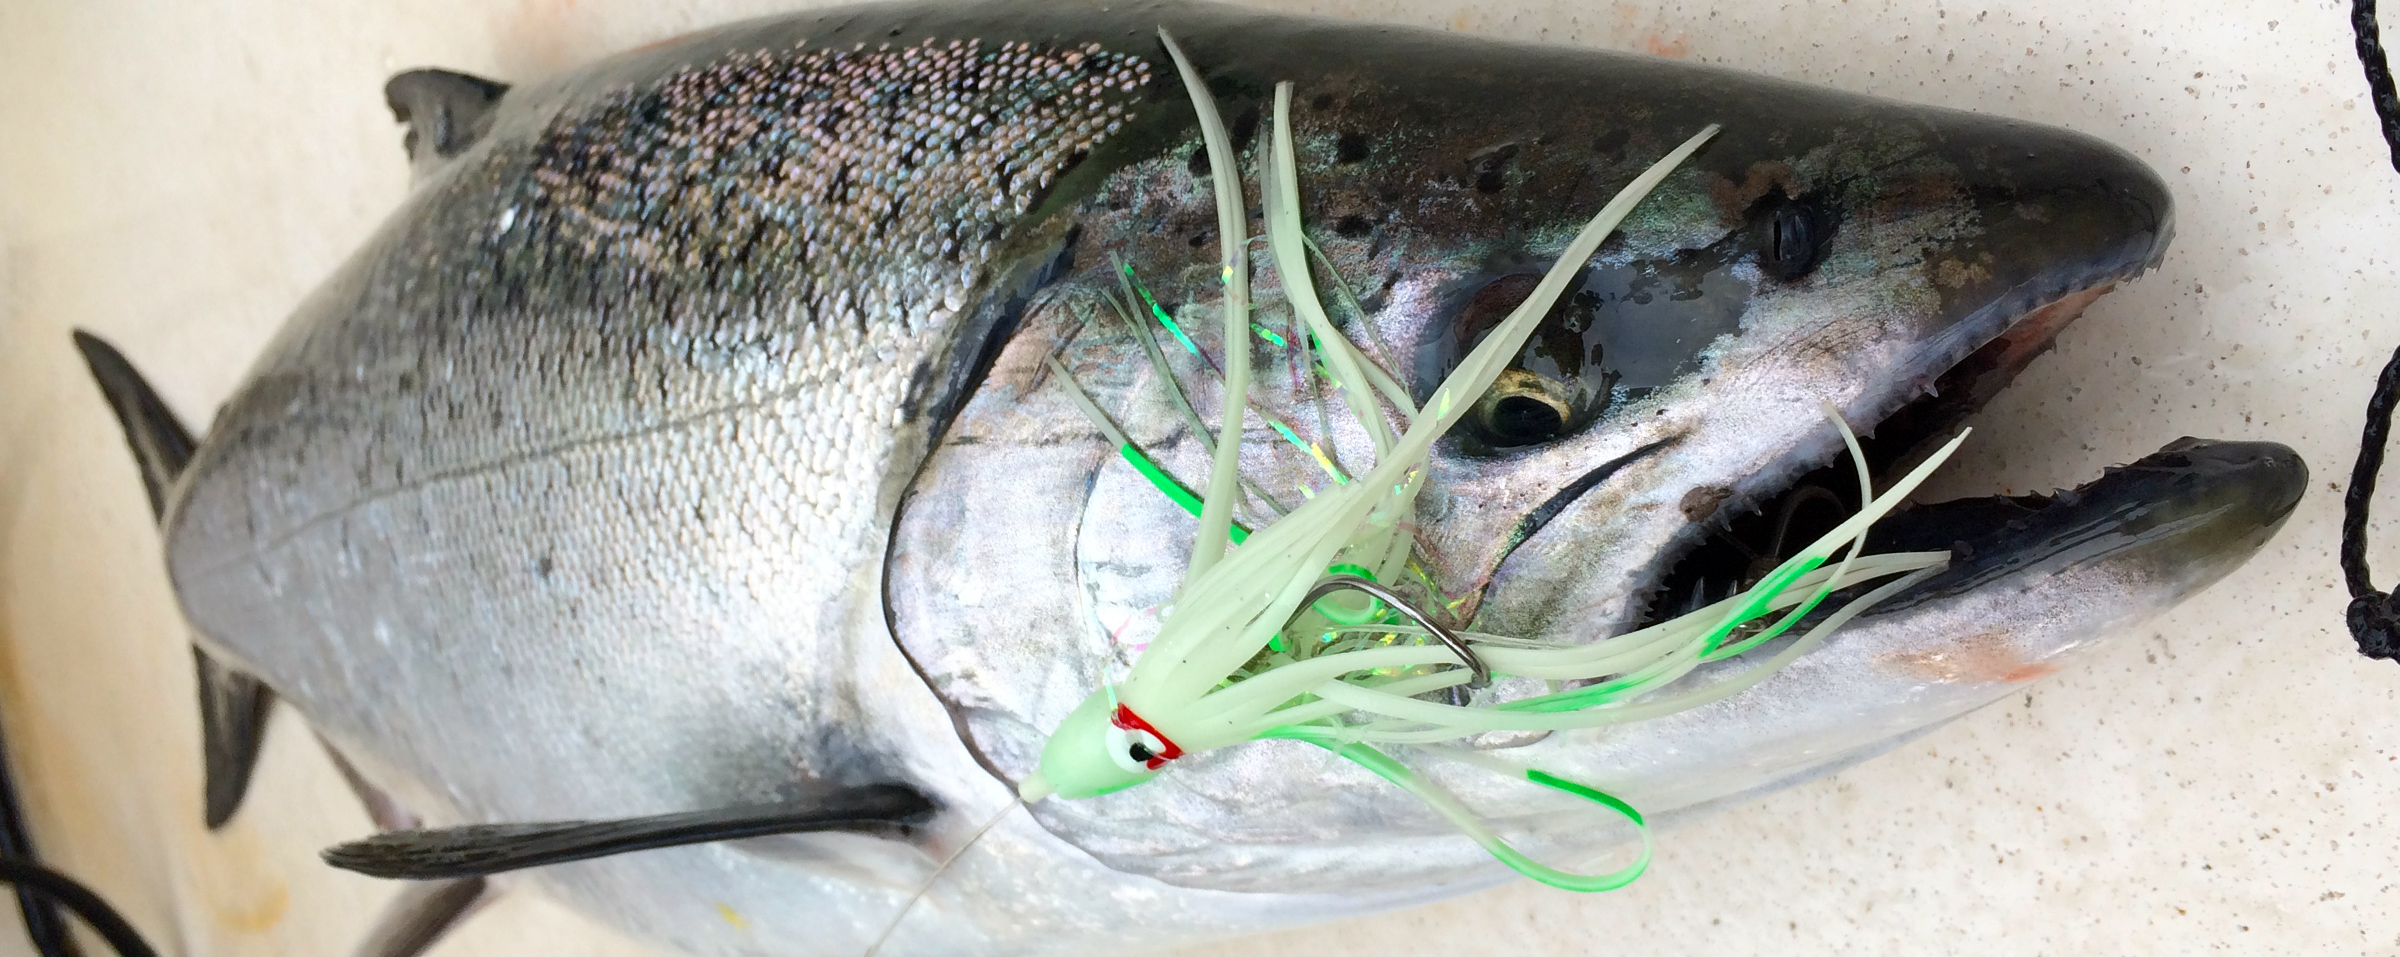 12 Great Lures for Chinook Salmon Fishing in Puget Sound